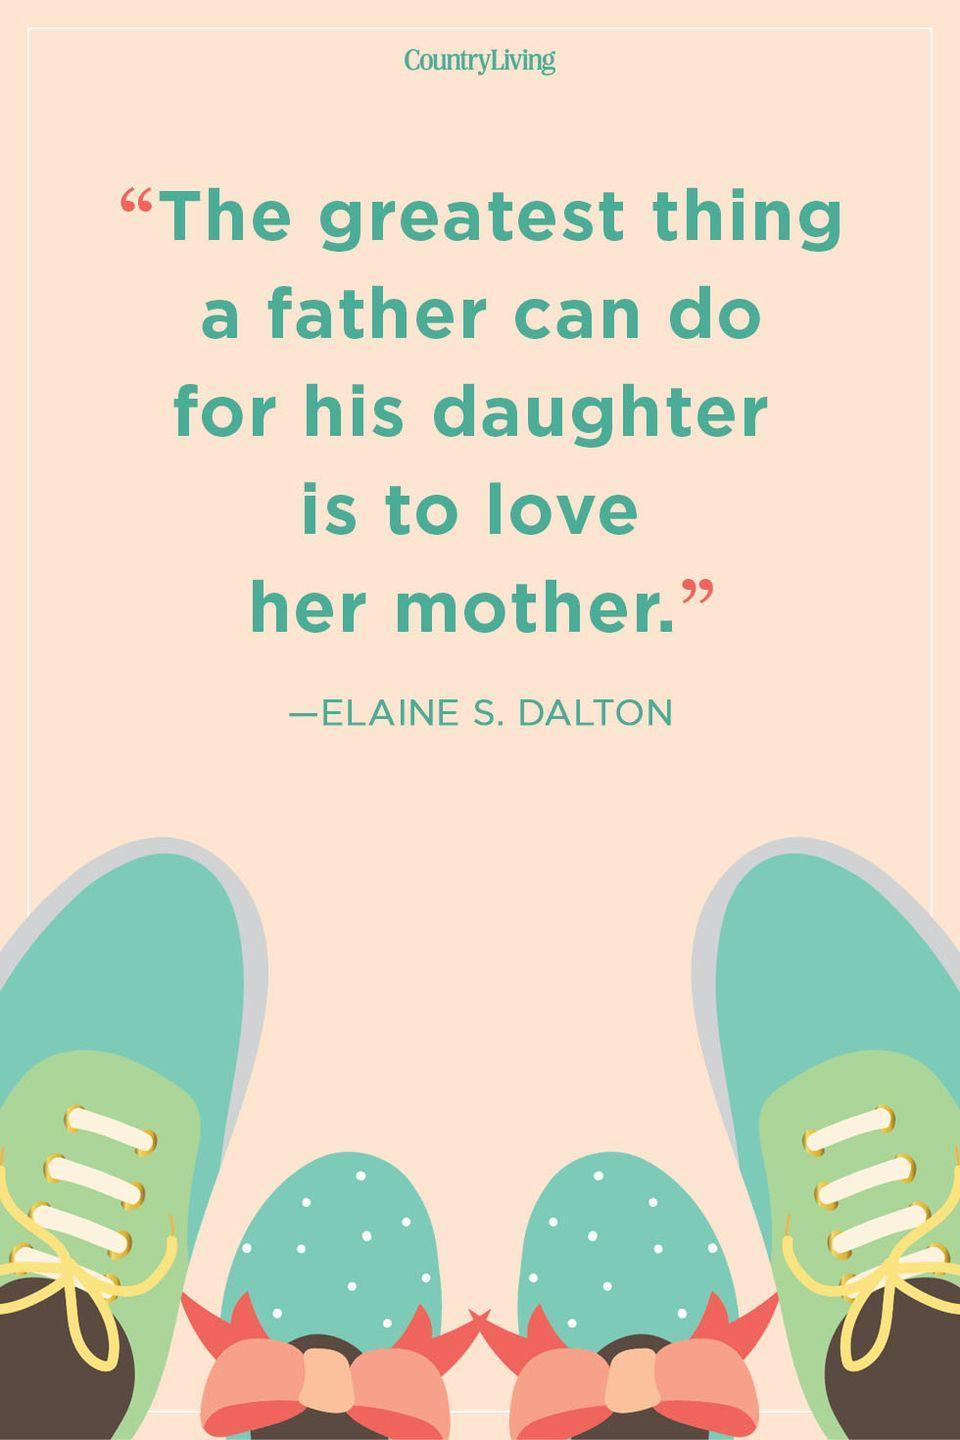 "<p>""The greatest thing a father can do for his daughter is to love her mother.""</p>"